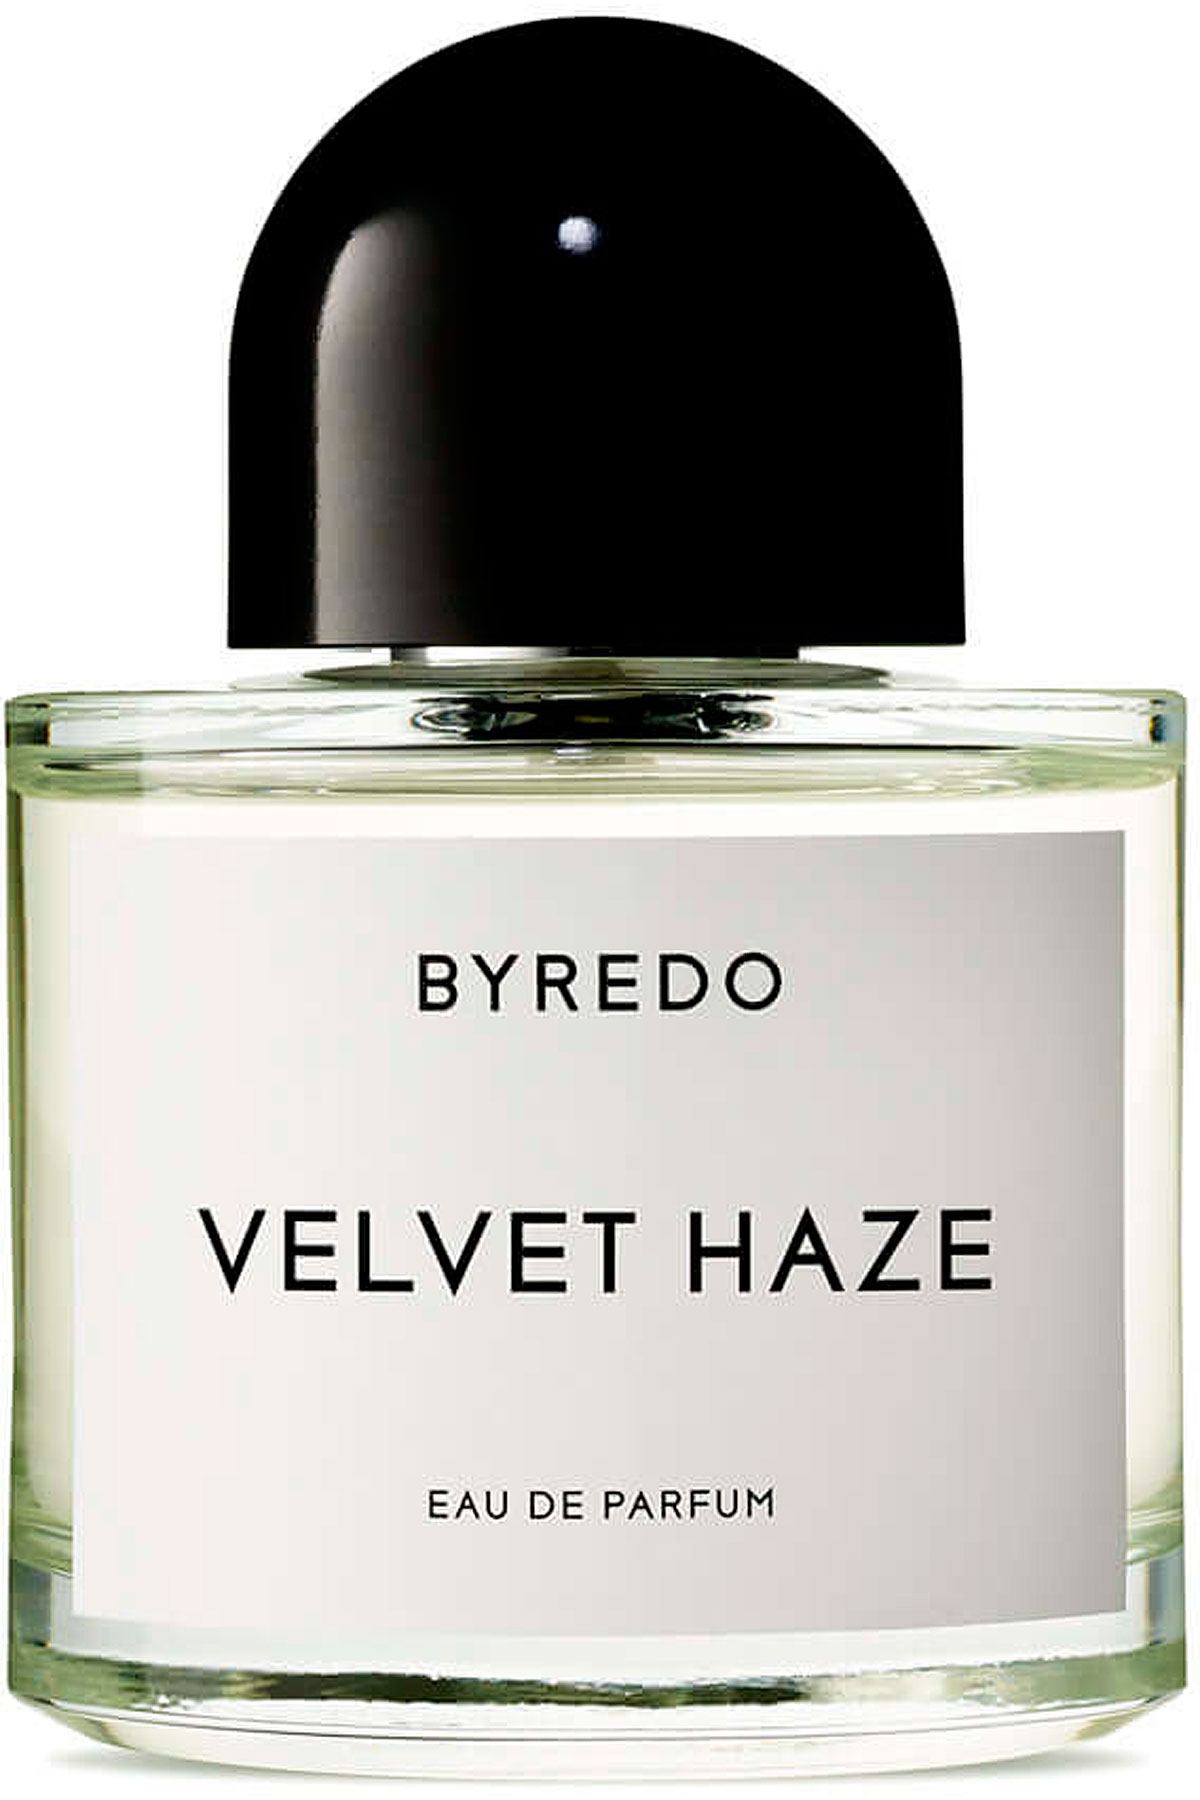 Byredo Fragrances for Men, Velvet Haze - Eau De Parfum - 100 Ml, 2019, 100 ml